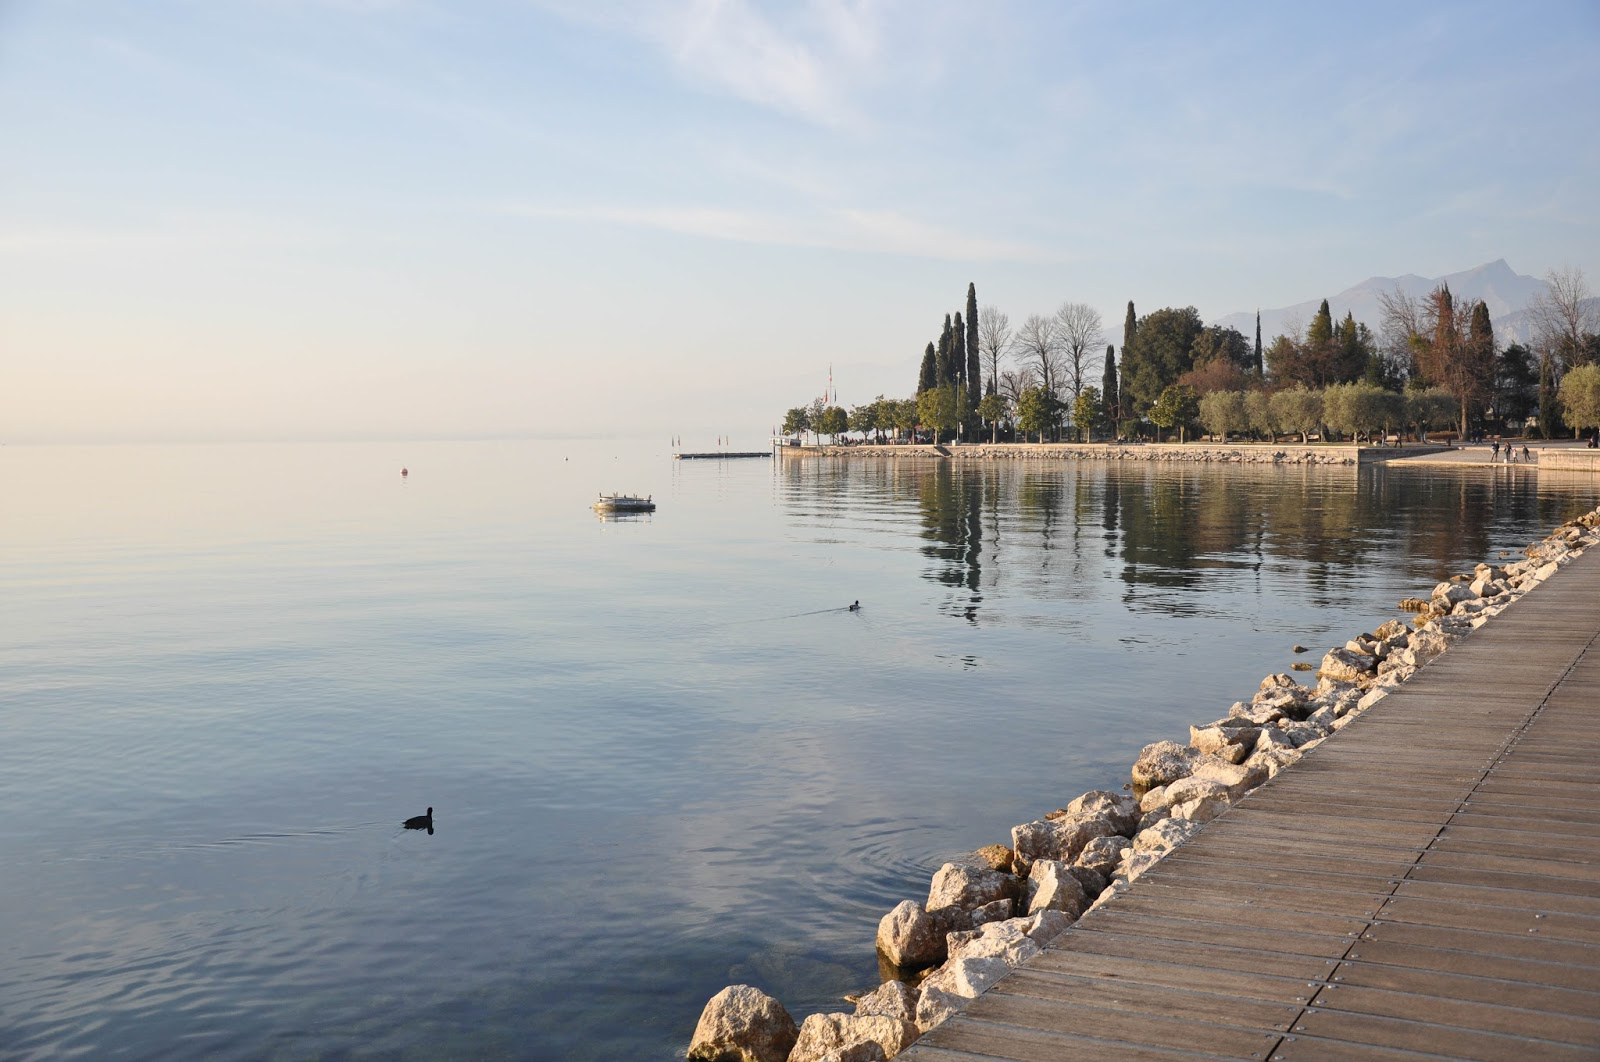 The promenade, Bardolino, Lake Garda, Italy